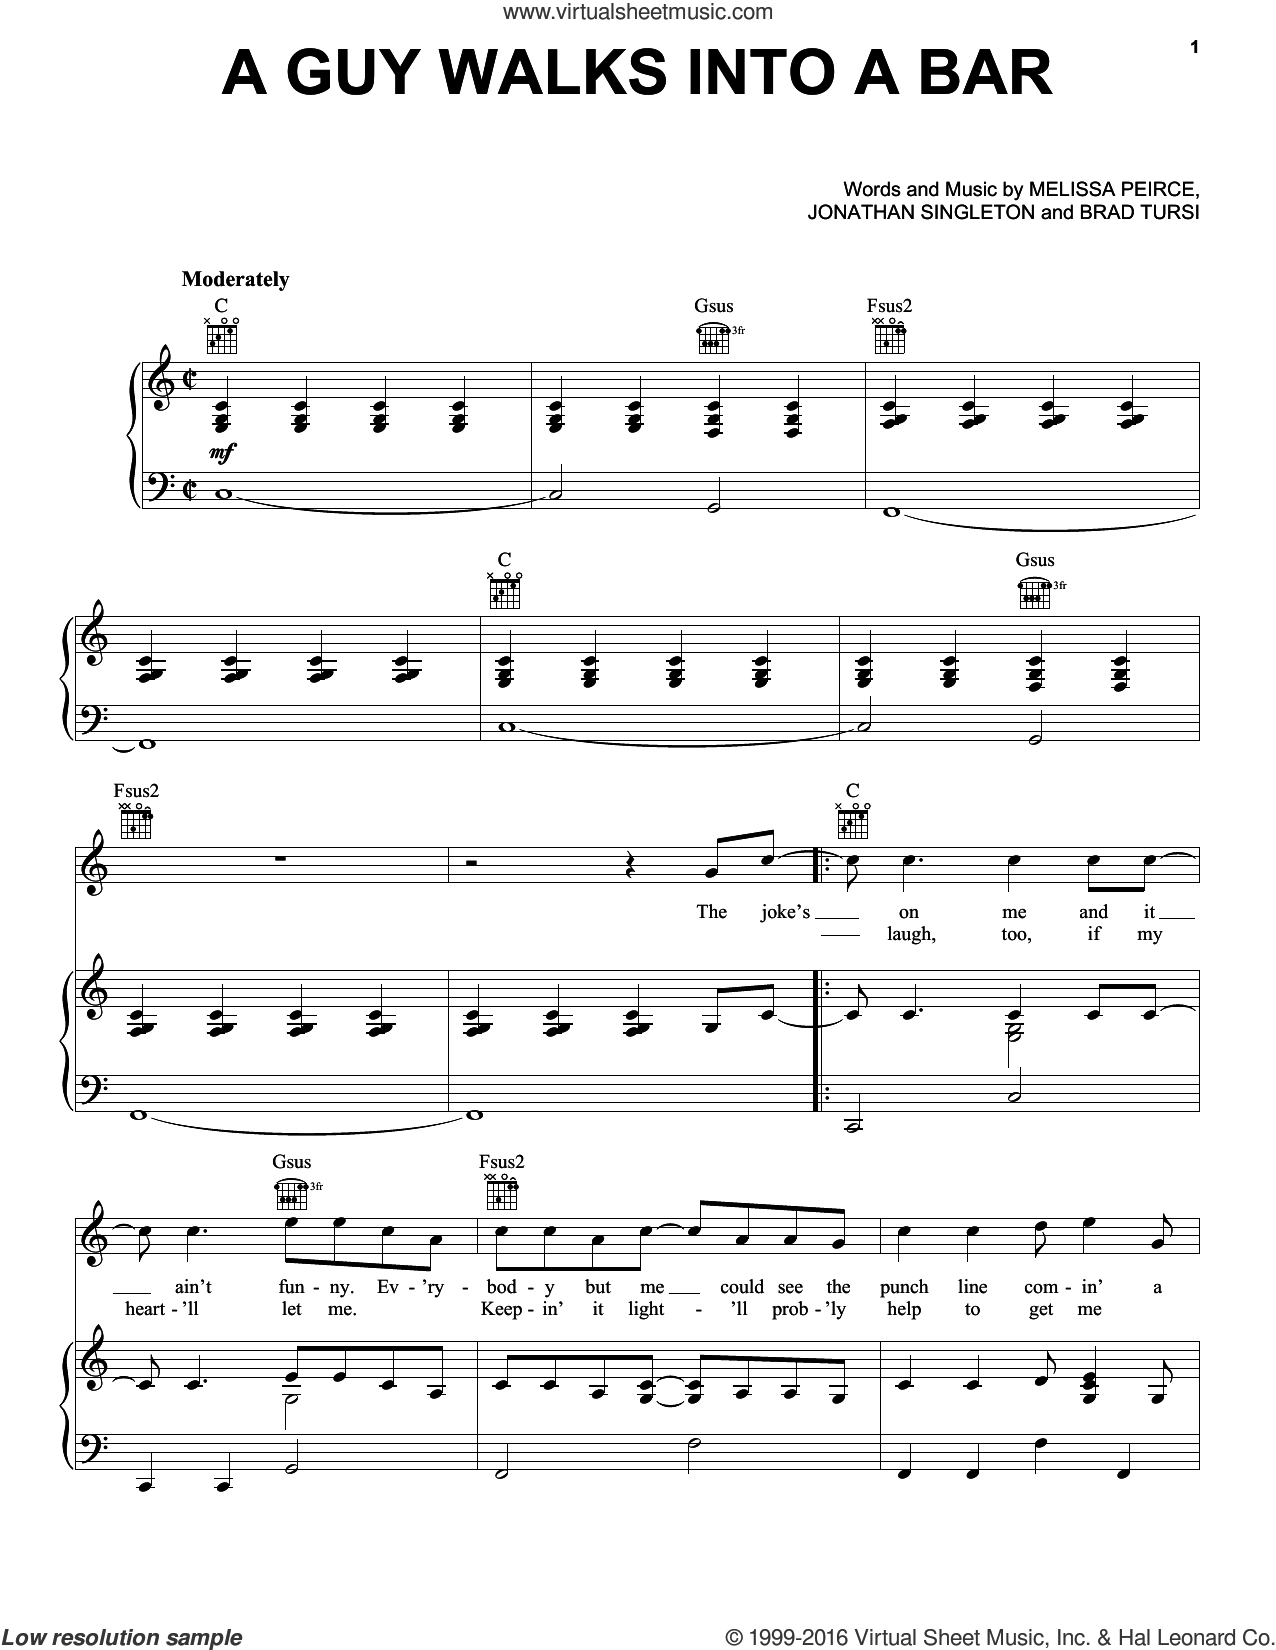 Guy Walks Into A Bar sheet music for voice, piano or guitar by Melissa Peirce, Brad Tursi and Jonathan Singleton. Score Image Preview.